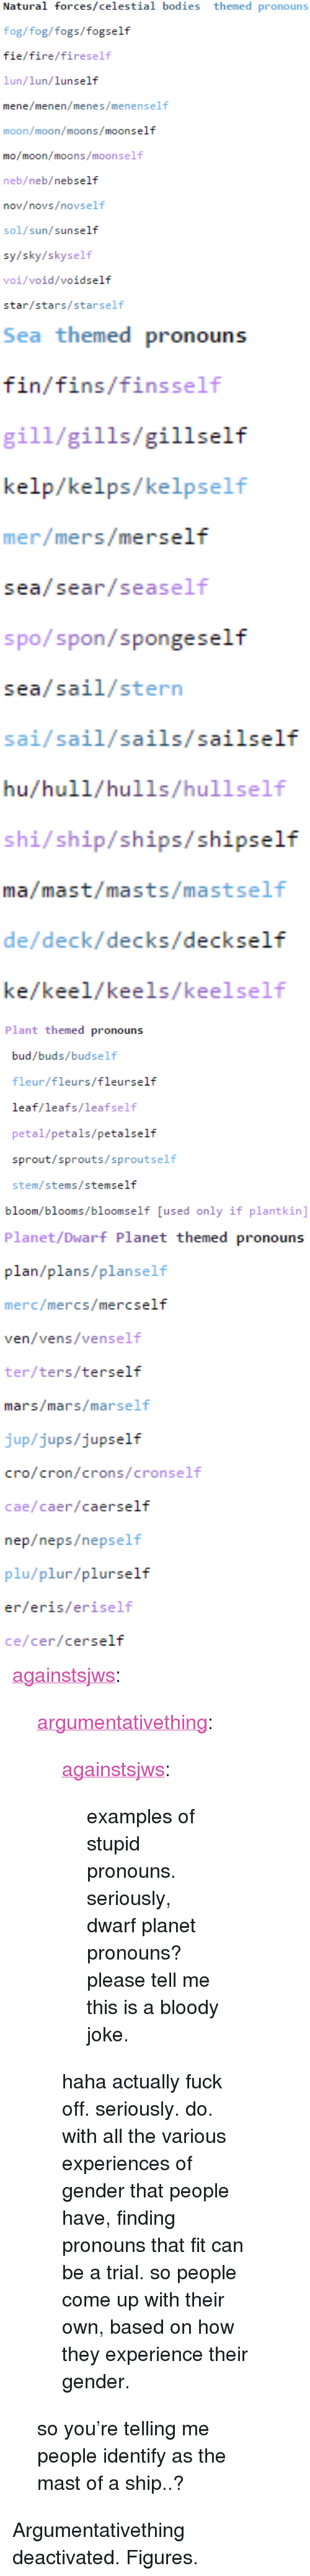 """Bodies , Fire, and Tumblr: Natural forces/celestial bodies themed pronouns  fog/fog/fogs/fogself  fie/fire/fireself  lun/lun/lunself  mene/menen/menes/menenself  moon/moon/moons/moonself  mo/moon/moons/moonself  neb/neb/nebself  nov/novs/novself  sol/sun/sunself  sy/sky/skyself  voi/void/voidself  star/stars/starself   Sea themed pronouns  fin/fins/finsself  gill/gills/gillself  kelp/kelps/kelpself  mer/mers/merself  sea/sear/seaself  spo/spon/spongeself  sea/sail/stern  sai/sail/sails/sailself  hu/hull/hulls/hullself  shi/ship/ships/shipself  ma/mast/masts/mastself  de/deck/decks/deckself  ke/keel/keels/keelself   Plant themed pronouns  bud/buds/budself  fleur/fleurs/fleurself  leaf/leafs/leafself  petal/petals/petalself  sprout/sprouts/sproutself  stem/stems/stemself  bloom/blooms/bloomself [used only if plantkin]   Planet/Dwarf Planet themed pronouns  plan/plans/planself  merc/mercs/mercself  ven/vens/venself  ter/ters/terself  mars/mars/marself  jup/jups/jupself  cro/cron/crons/cronself  cae/caer/caerself  nep/neps/nepself  plu/plur/plurself  er/eris/eriself  ce/cer/cerself <p><a href=""""http://againstsjws.tumblr.com/post/126658058168/argumentativething-againstsjws-examples-of"""" class=""""tumblr_blog"""">againstsjws</a>:</p>  <blockquote><p><a class=""""tumblr_blog"""" href=""""http://argumentativething.tumblr.com/post/126657979744"""">argumentativething</a>:</p> <blockquote> <p><a class=""""tumblr_blog"""" href=""""http://againstsjws.tumblr.com/post/126583987518"""">againstsjws</a>:</p> <blockquote> <p>examples of stupid pronouns. seriously, dwarf planet pronouns? please tell me this is a bloody joke.</p> </blockquote> <p>haha actually fuck off. seriously. do.</p> <p>with all the various experiences of gender that people have, finding pronouns that fit can be a trial. so people come up with their own, based on how they experience their gender.</p> </blockquote>  <p>so you're telling me people identify as the mast of a ship..?</p></blockquote>  <p>Argumentativething deactivated. Figures.</p>"""